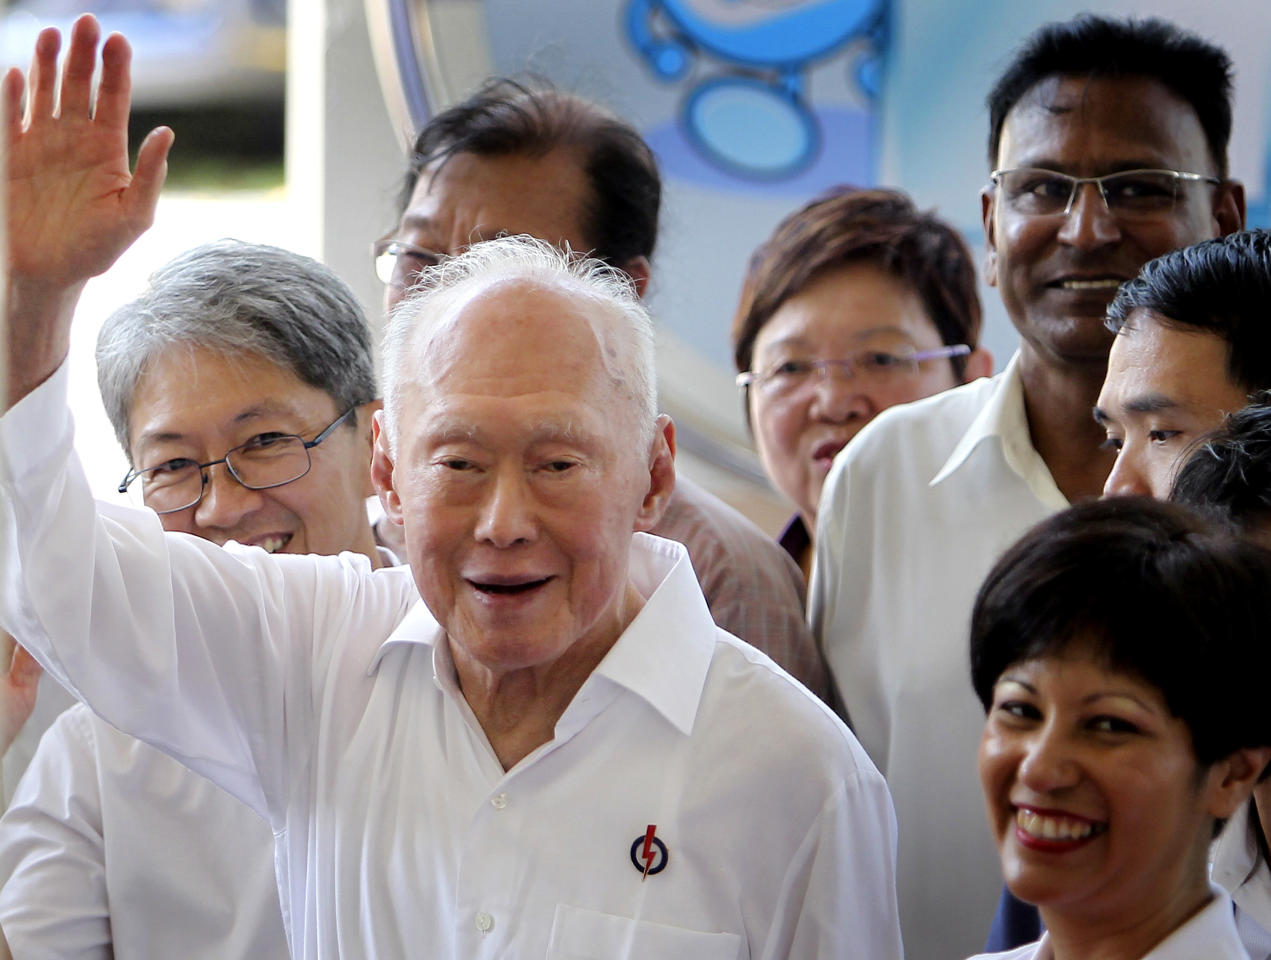 FILE - In this April 27, 2011 file photo, Singapore's Minister Mentor Lee Kuan Yew waves to supporters as he arrives at an elections nomination center in Singapore. Singapore founding father Lee Kuan Yew resigned from the Cabinet on Saturday, May 14, 2011, ceding leadership to a younger generation after his party's worst election result since independence in 1965.